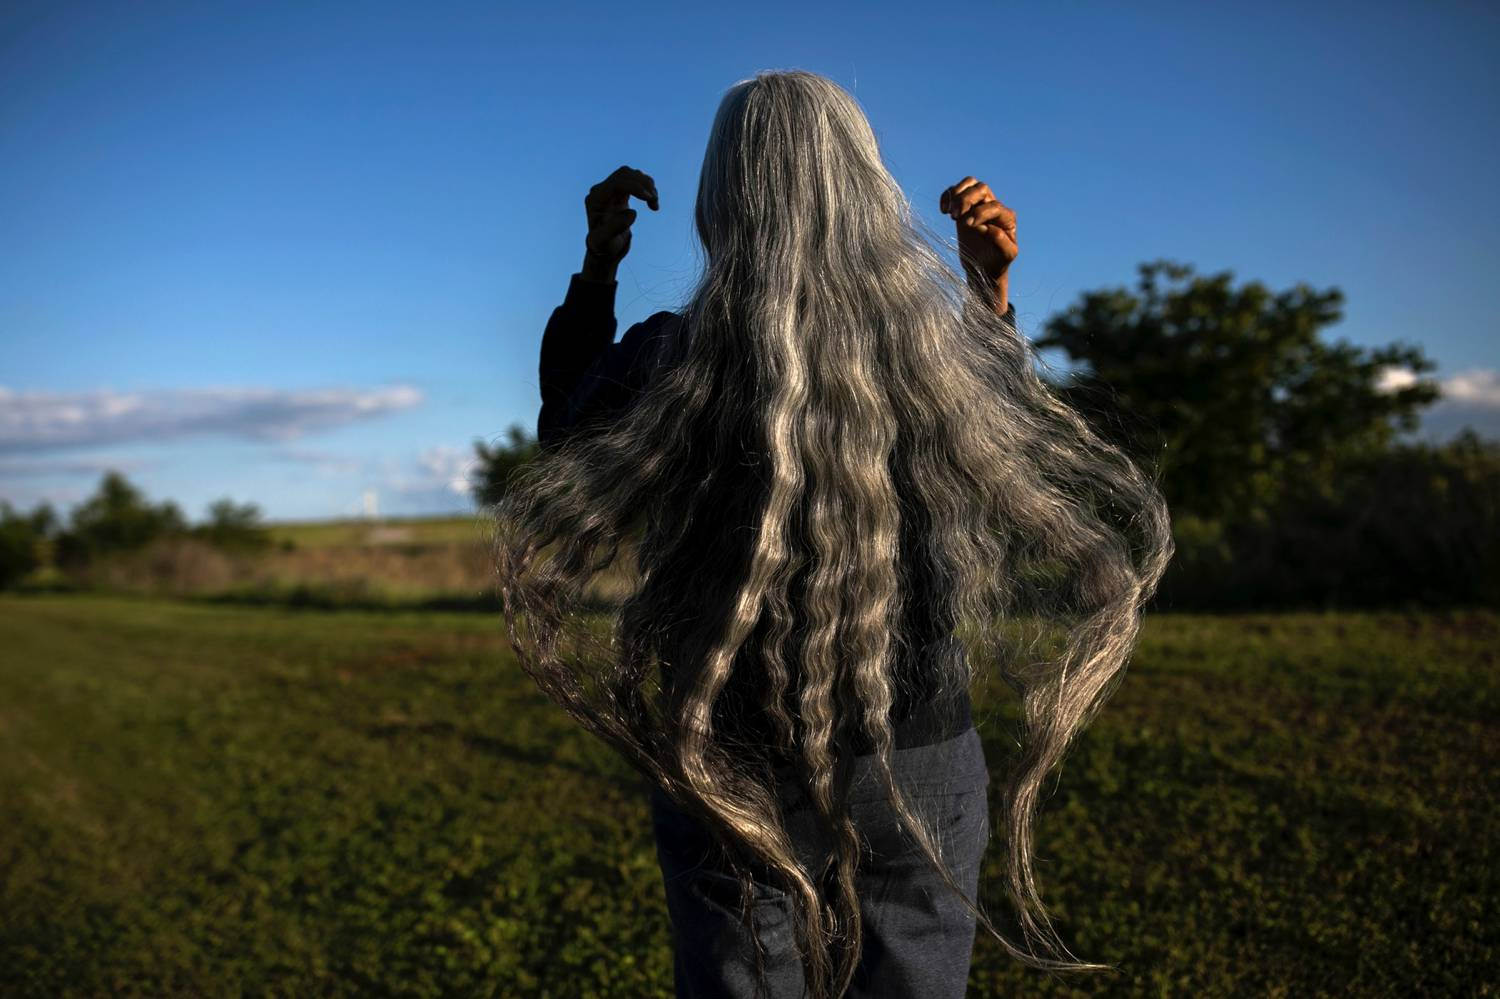 Photo: Maddie McGarvey's portrait of a woman with flowing grey hair shows her brushing her hair back so it flows below her waist as she looks out at a bright blue sky.